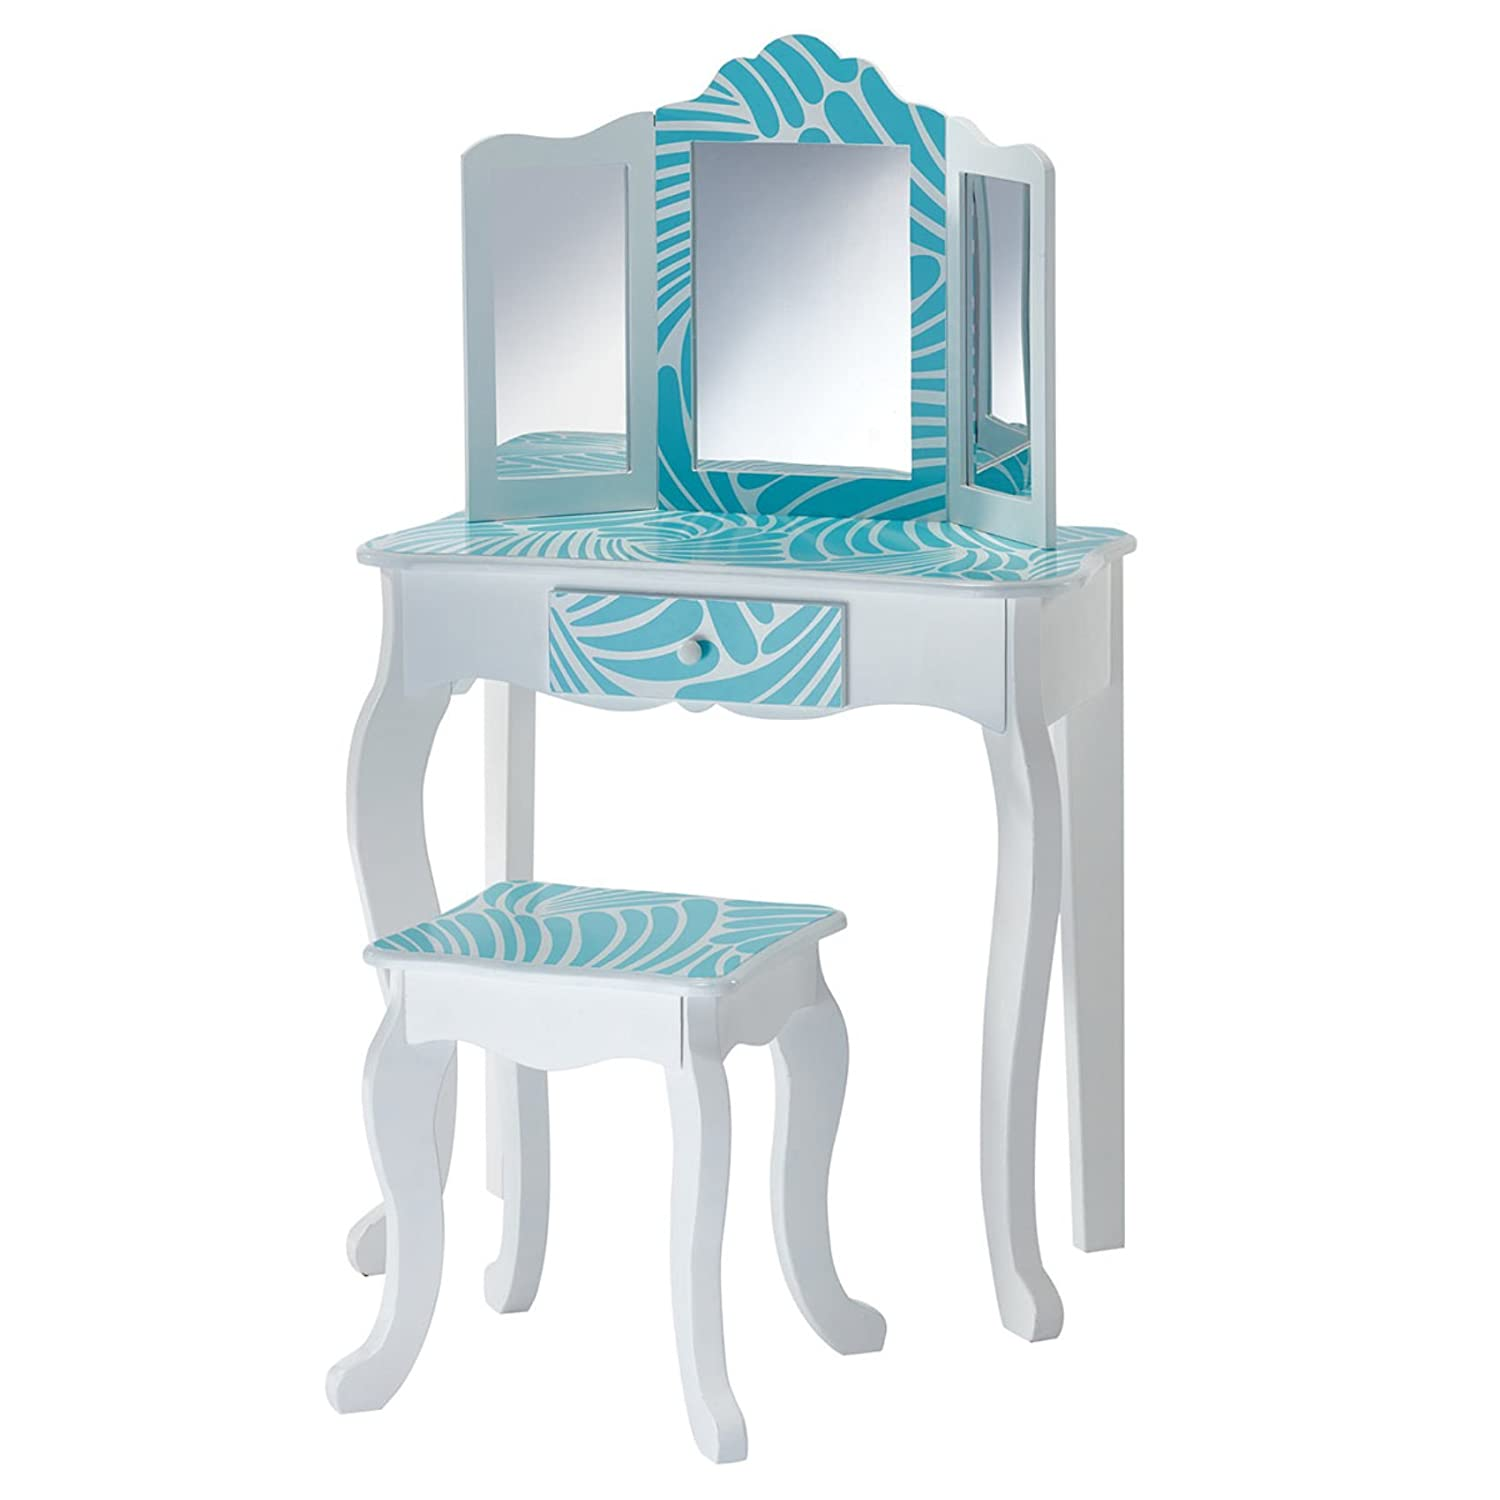 Teamson Kids Fashion Prints Safe Sturdy Eco-Friendly MDF Wooden Vanity Table and Stool Set for Kids 3 Years Up, Tropical Teamson Kíds